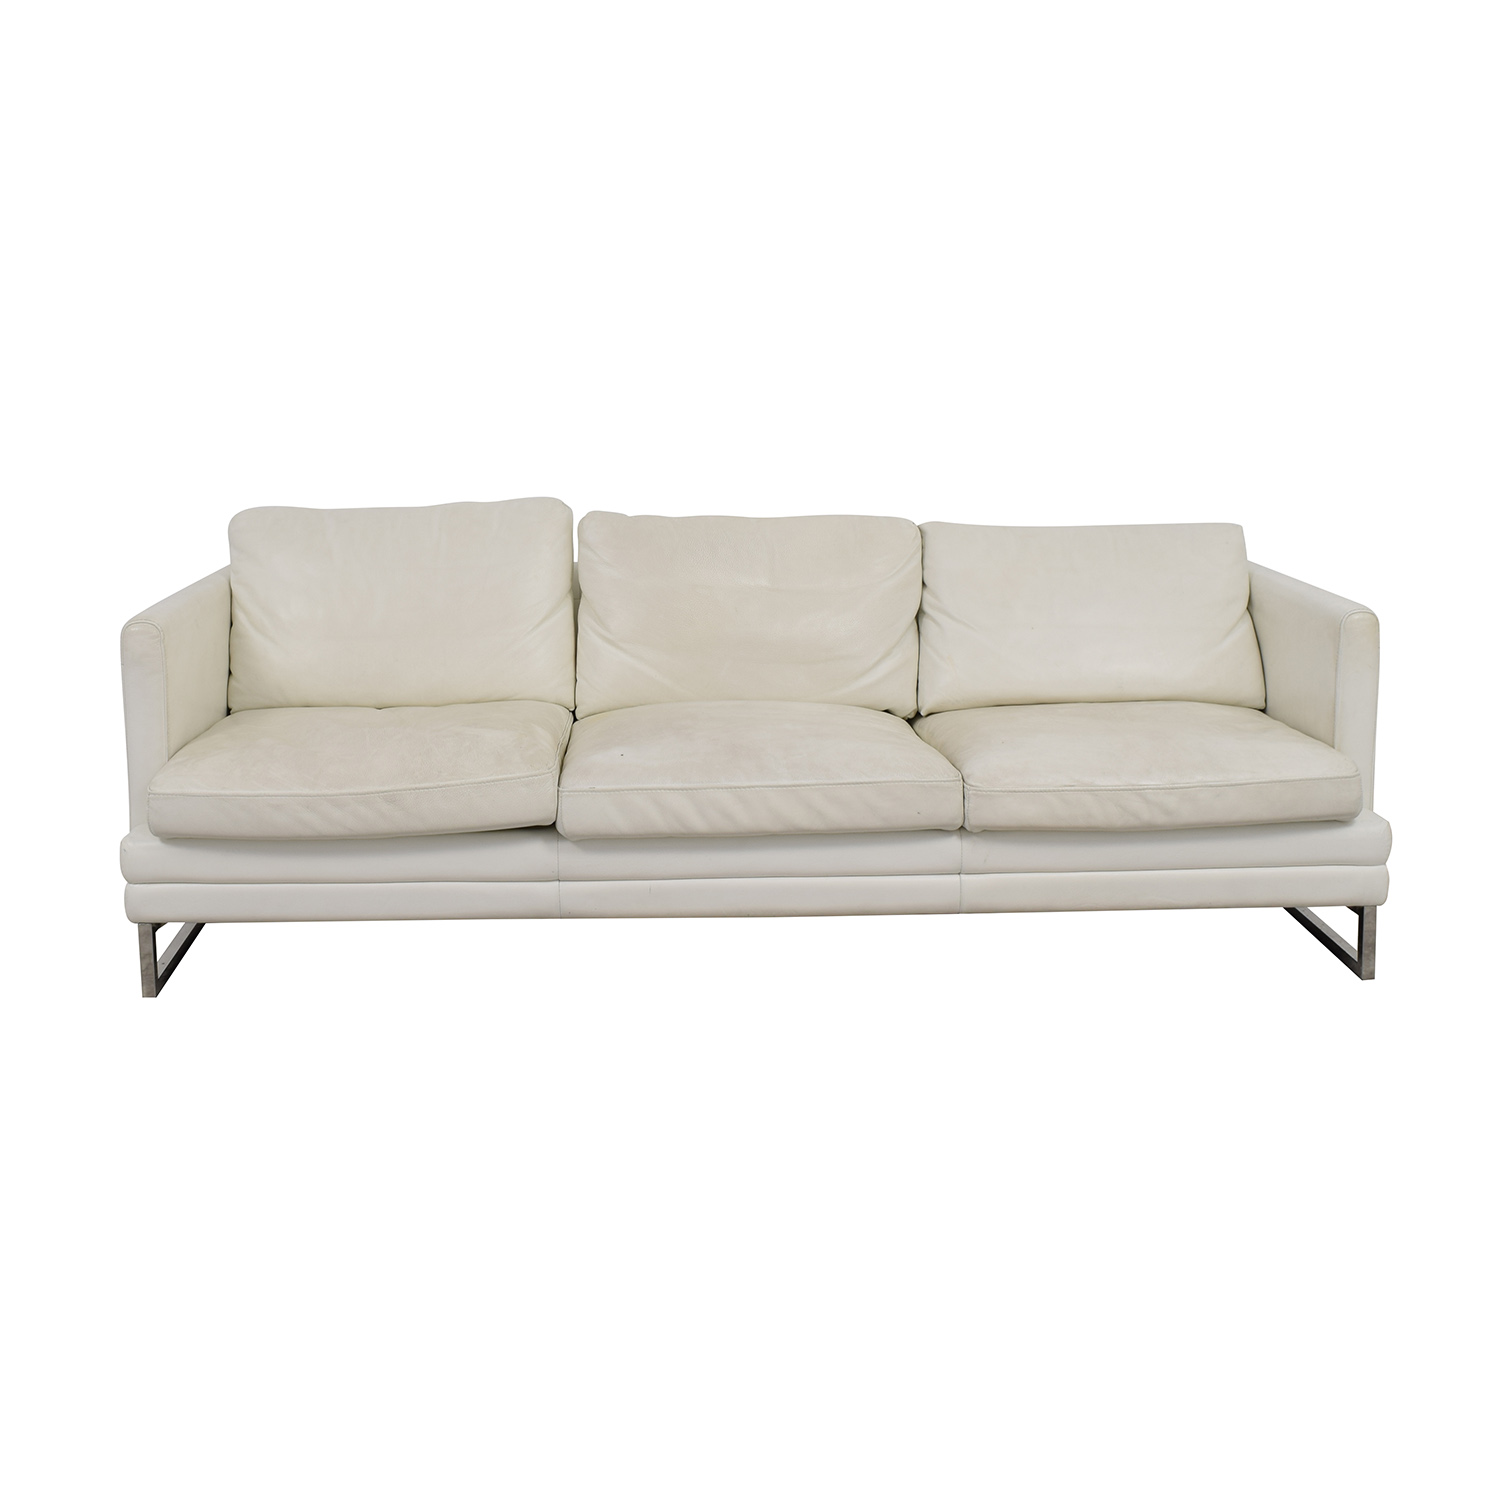 Z Gallerie White Leather Three-Cushion Sofa sale